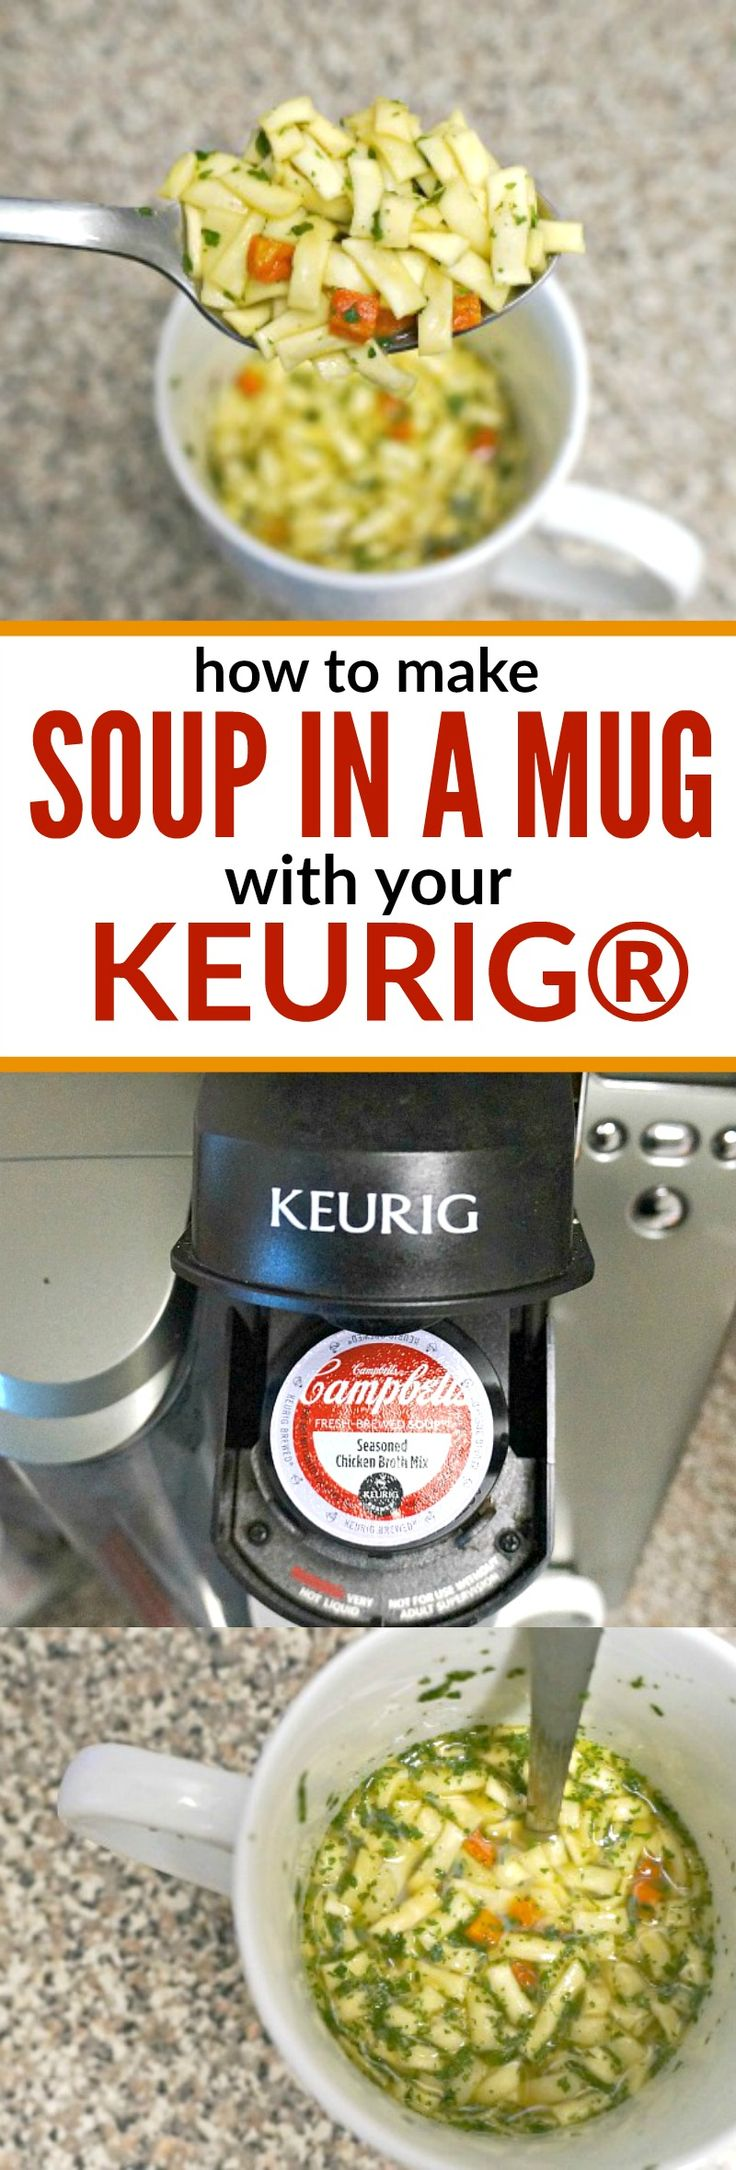 How to Make Soup In A Mug with Your Keurig® Brewer woth @Campbells Fresh-Brewed soups®! #ad